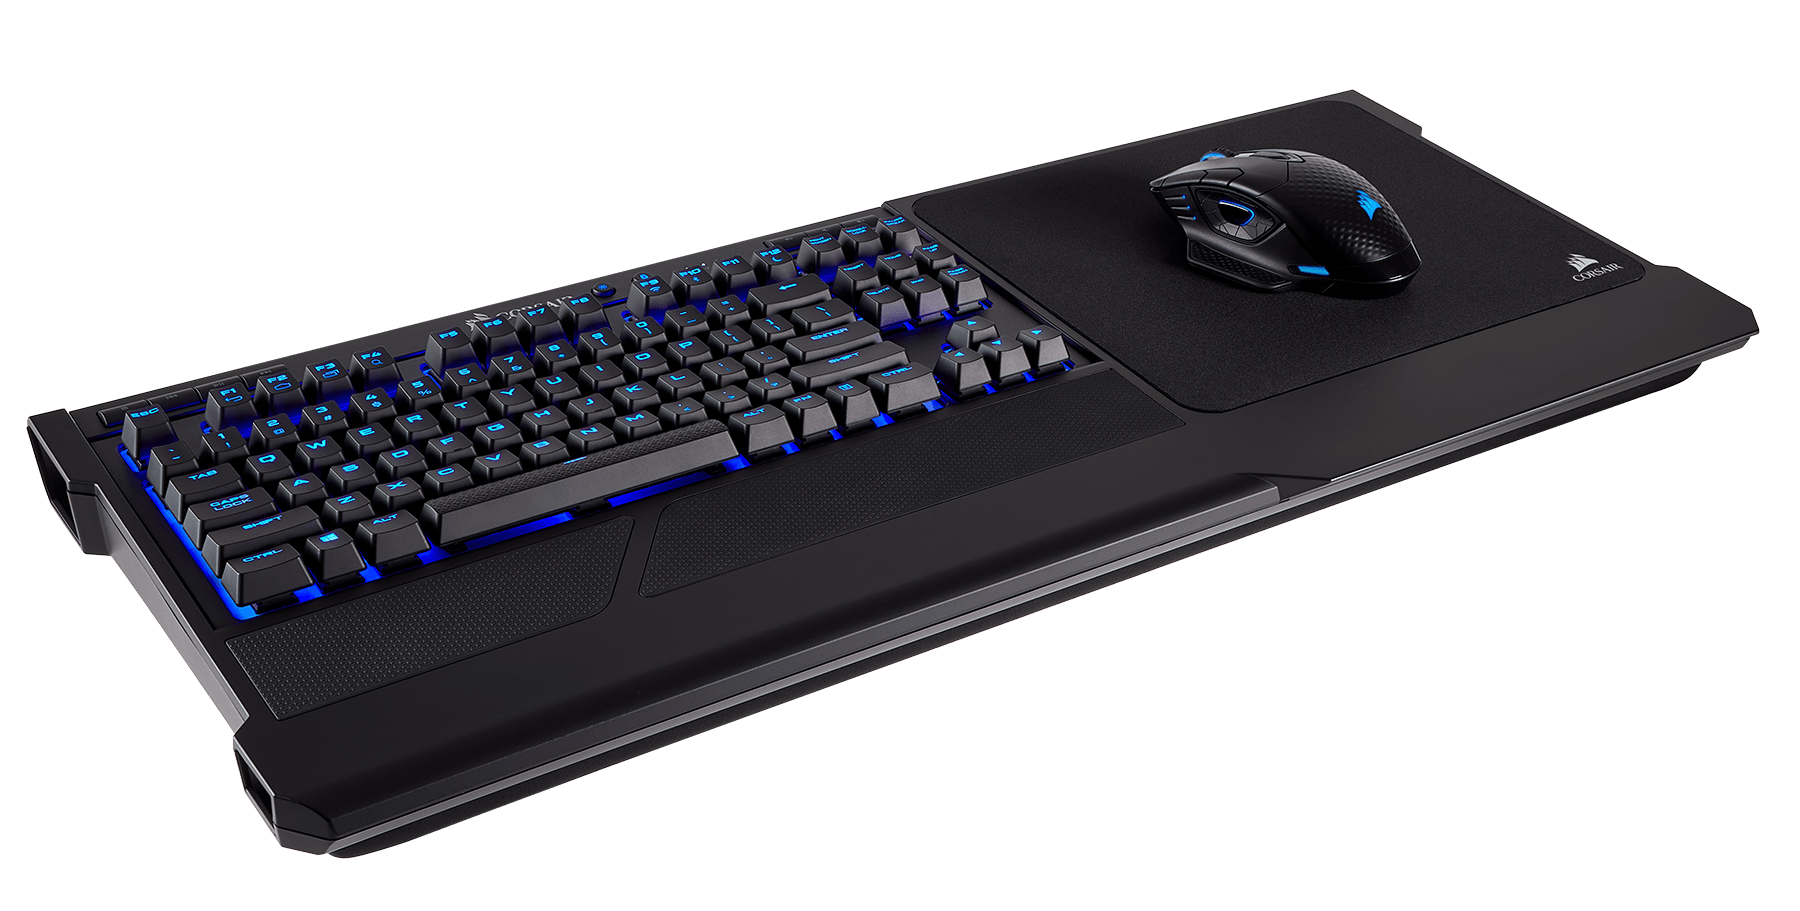 0e04dbaae The K63 wireless keyboard is available now for  110 (keyboard only)